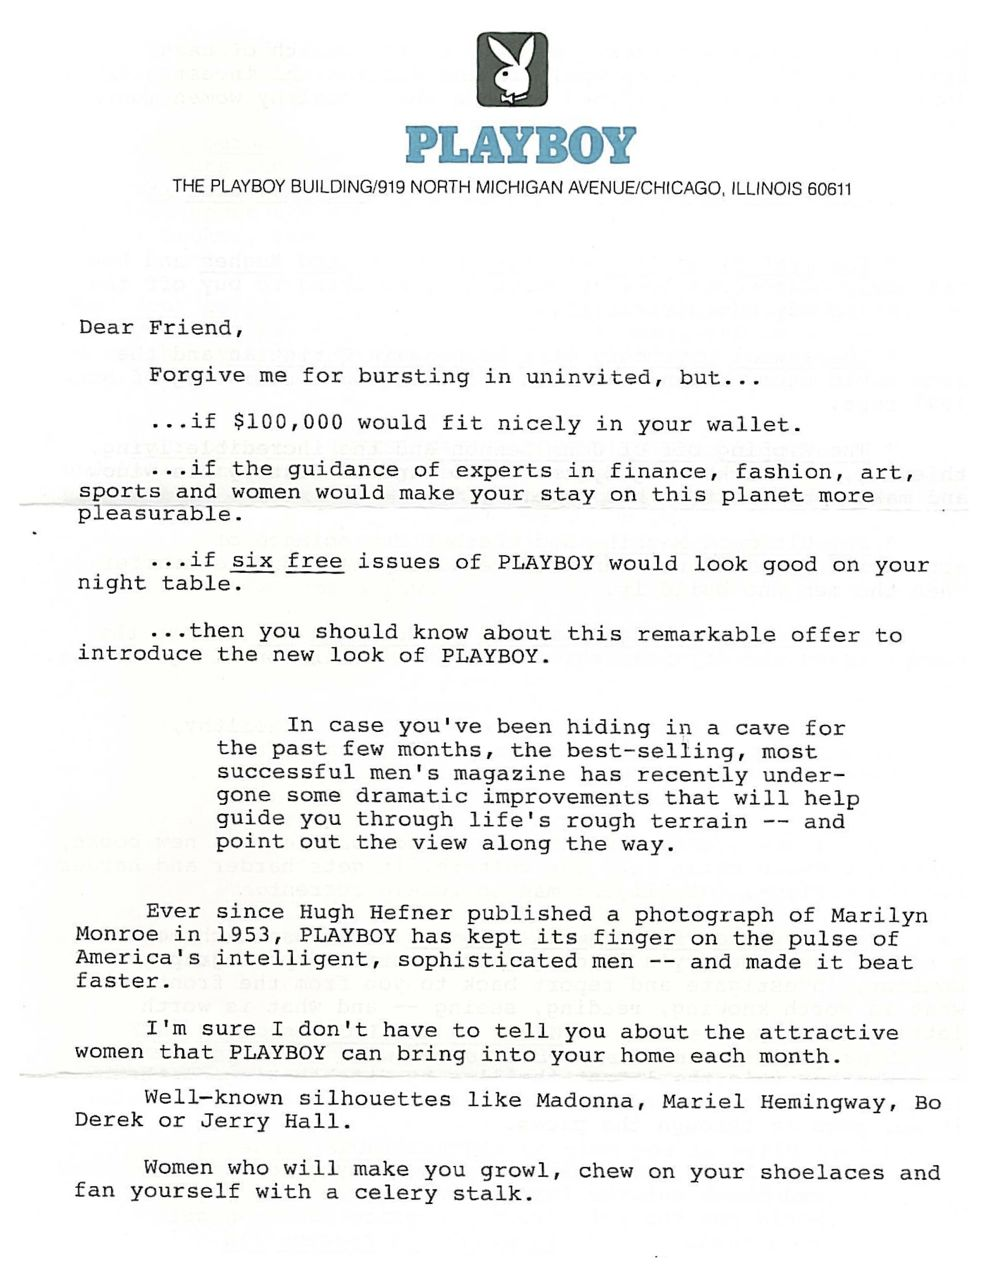 image of Playboy direct mail sales letter page 1